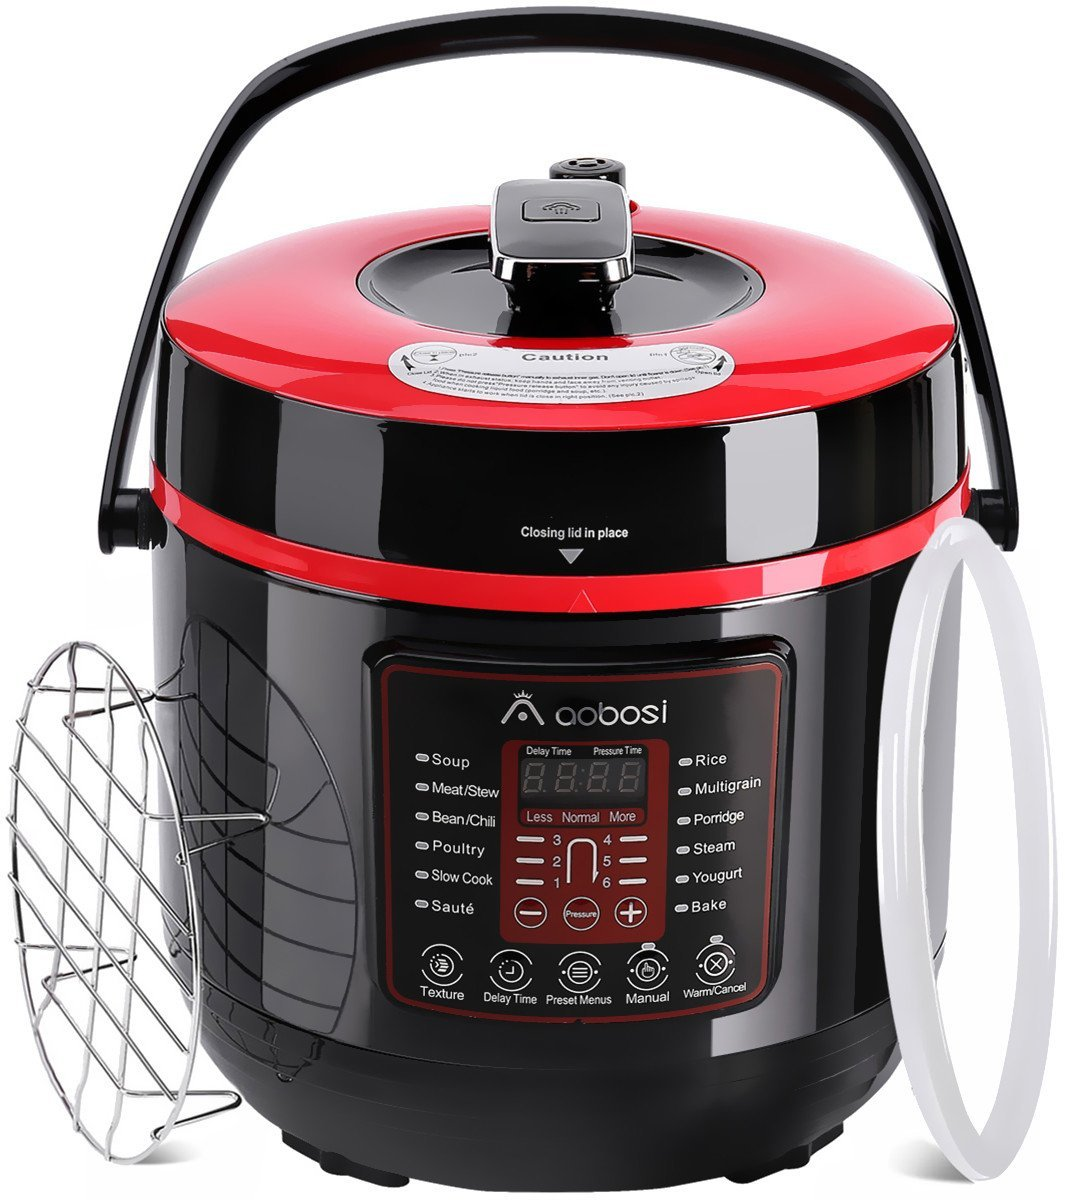 Aobosi Pressure Cooker 6Qt 8-in-1 Electric Multi-cooker,Rice Cooker,Slow Cooker,Sauté,Yogurt Maker,Steamer|6 Pressure Levels|Safe Release Button|Free Cooking Rack,Cookbook,Sealing Ring,Stainless Steel